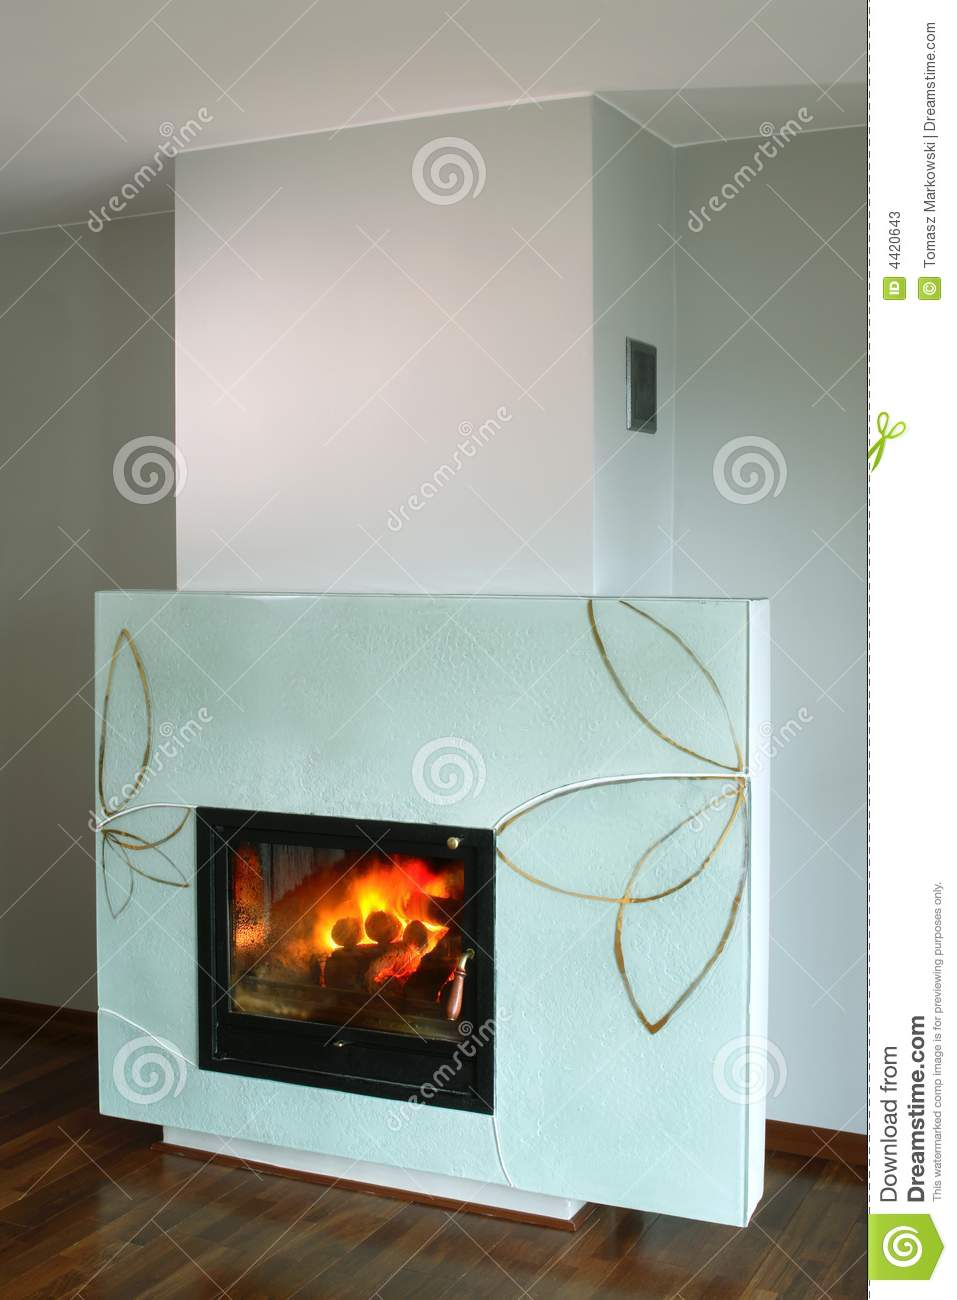 Fireplace With Glass Surround Stock Image Image of fire